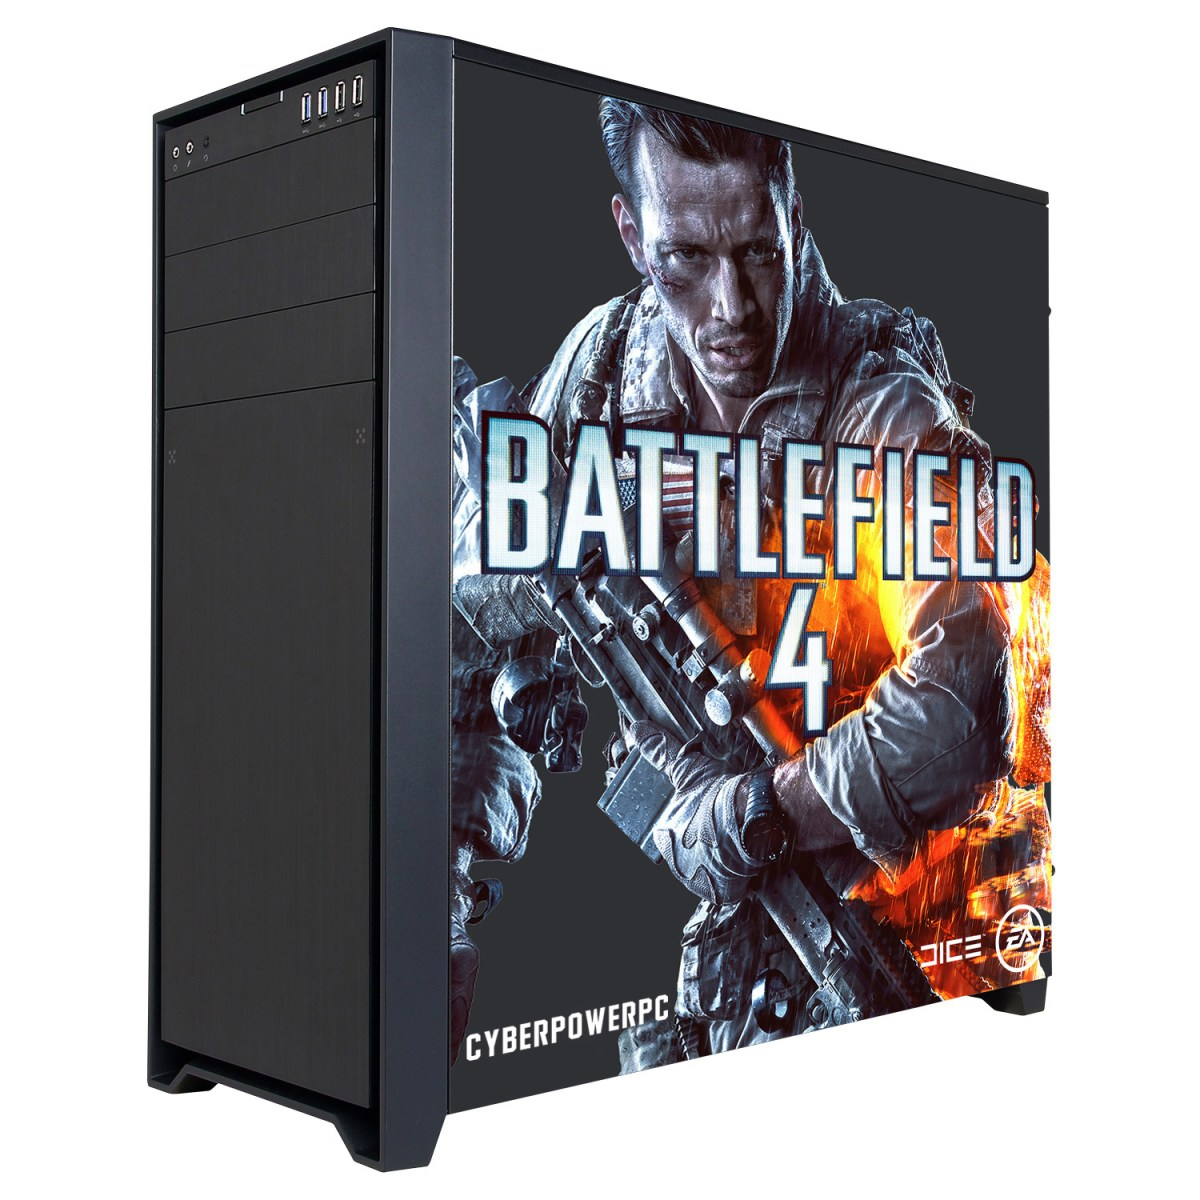 Enter For Your Chance To Upgrade Your BF4 Battle Station CYBERPOWERPC